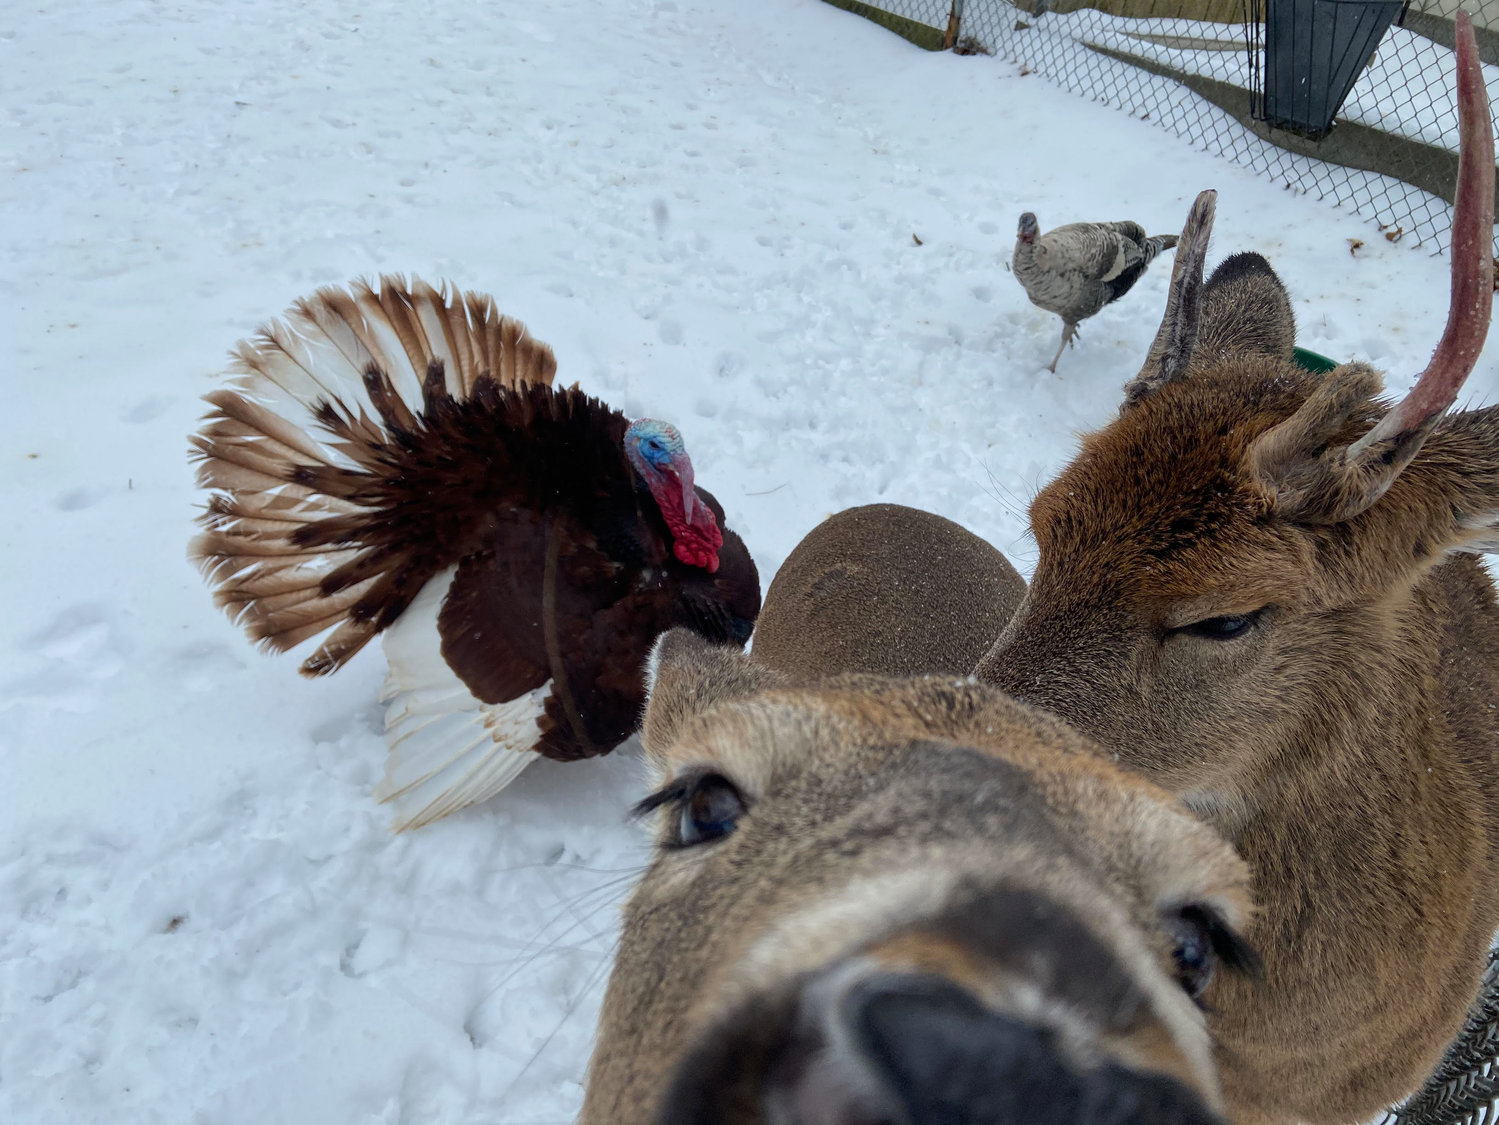 Male and female turkeys, Tom and Tina, play in the snow with white-tailed deer Clarice and Rudy.